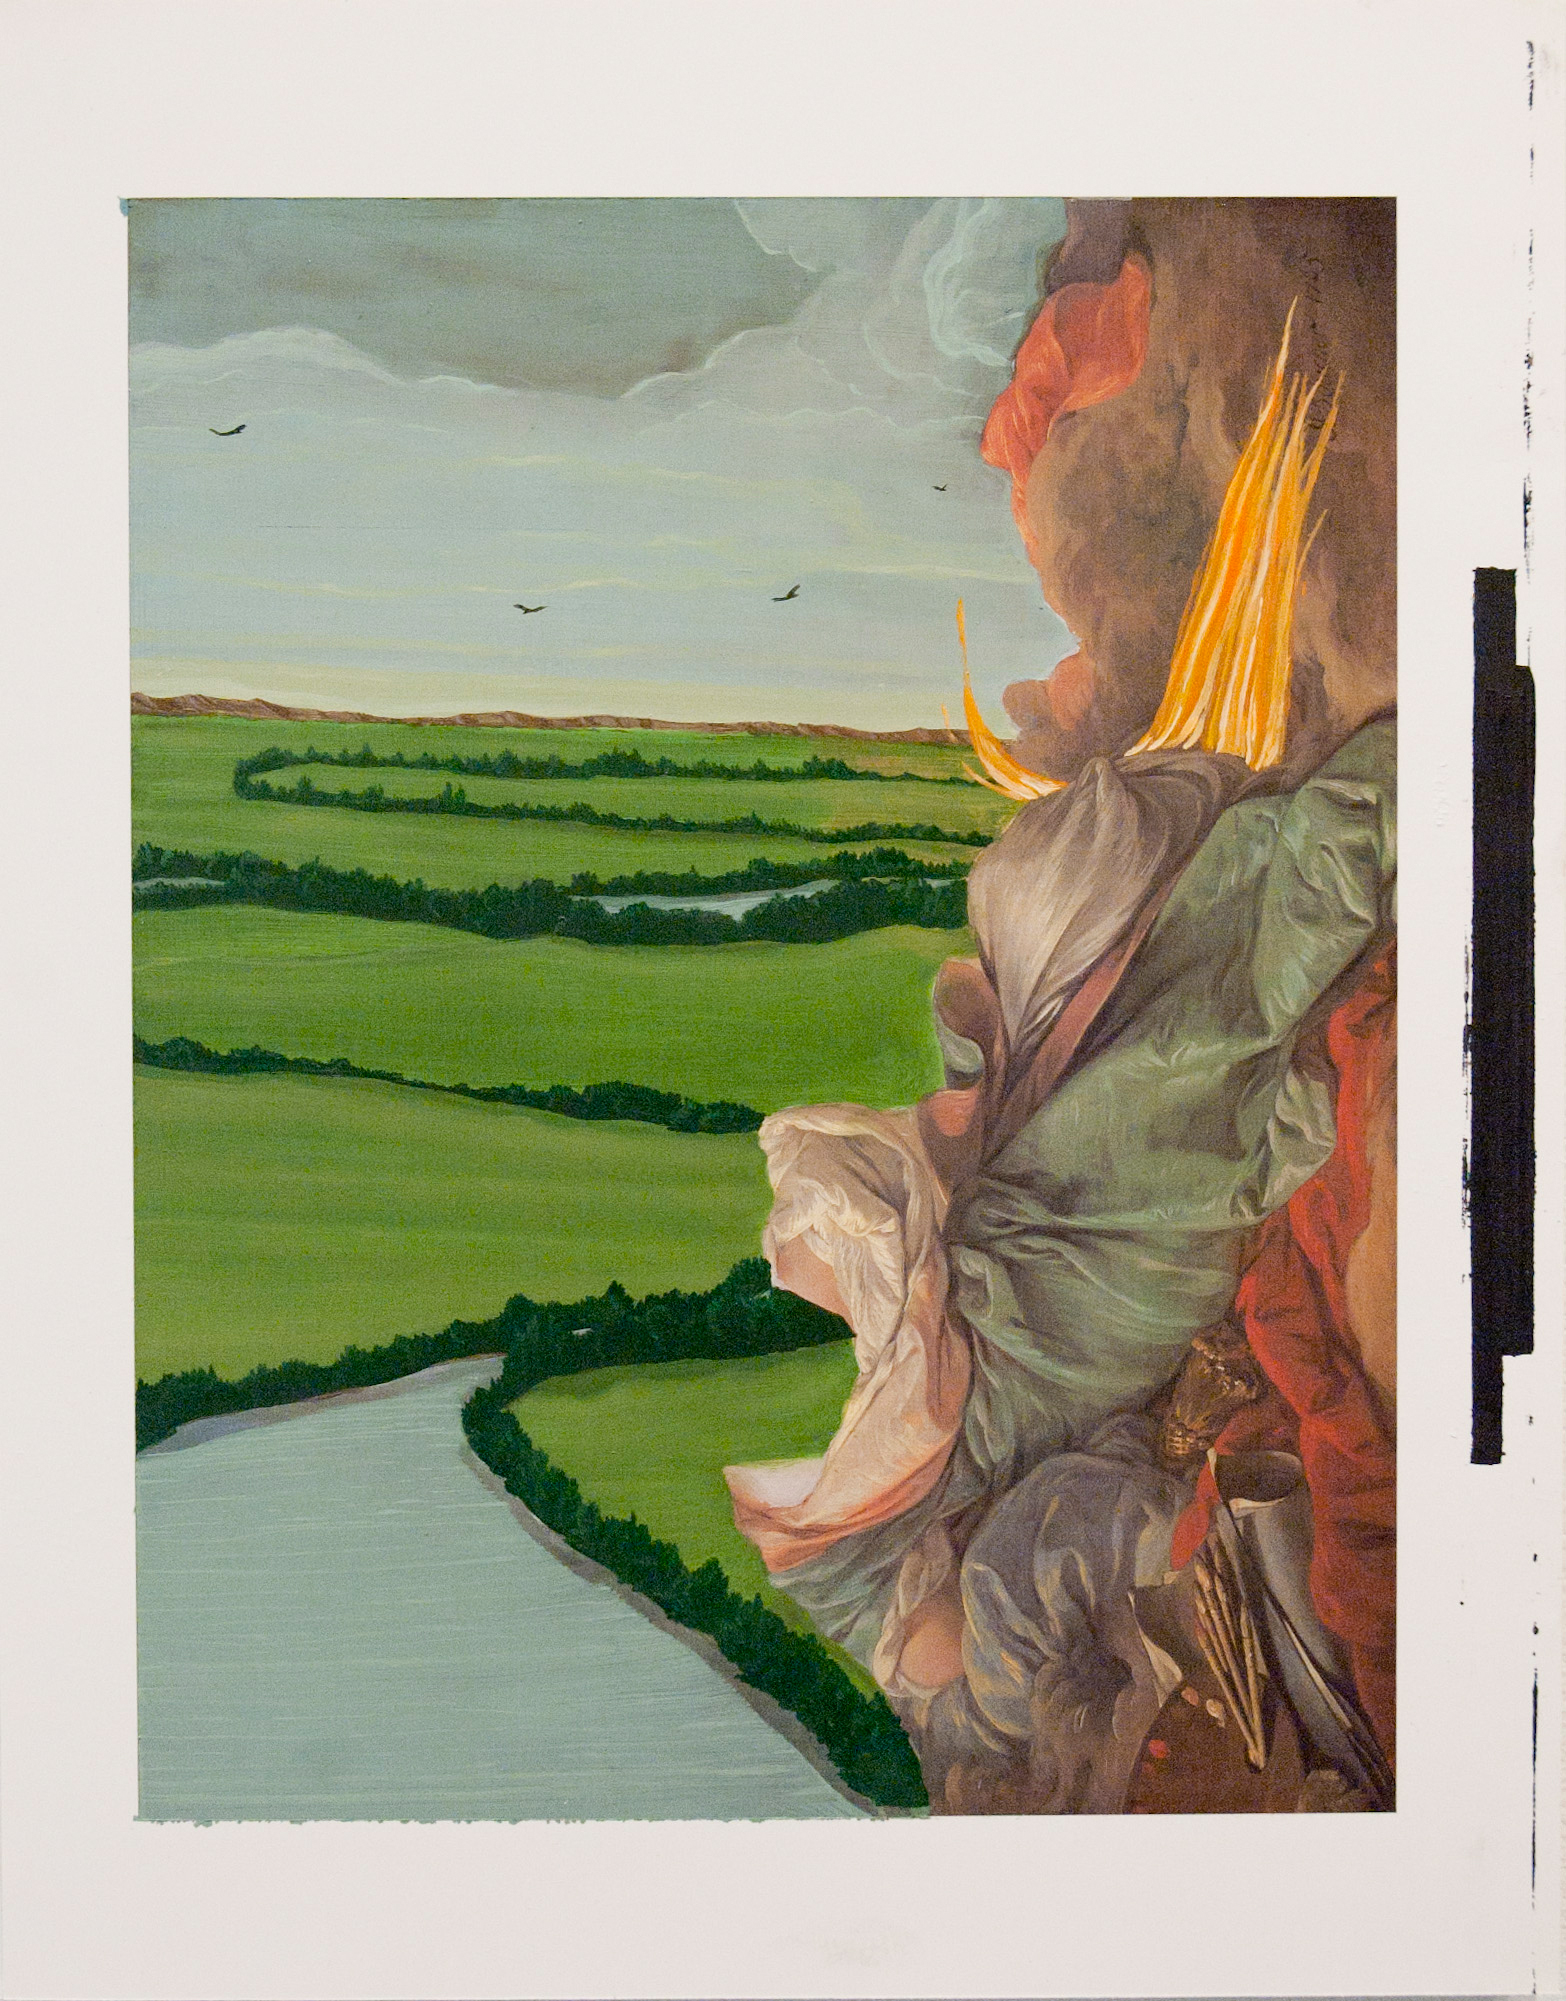 Mann.Study for View From Drapery_ 14x11in_ mann_oil on reproduction on panel20121.JPG